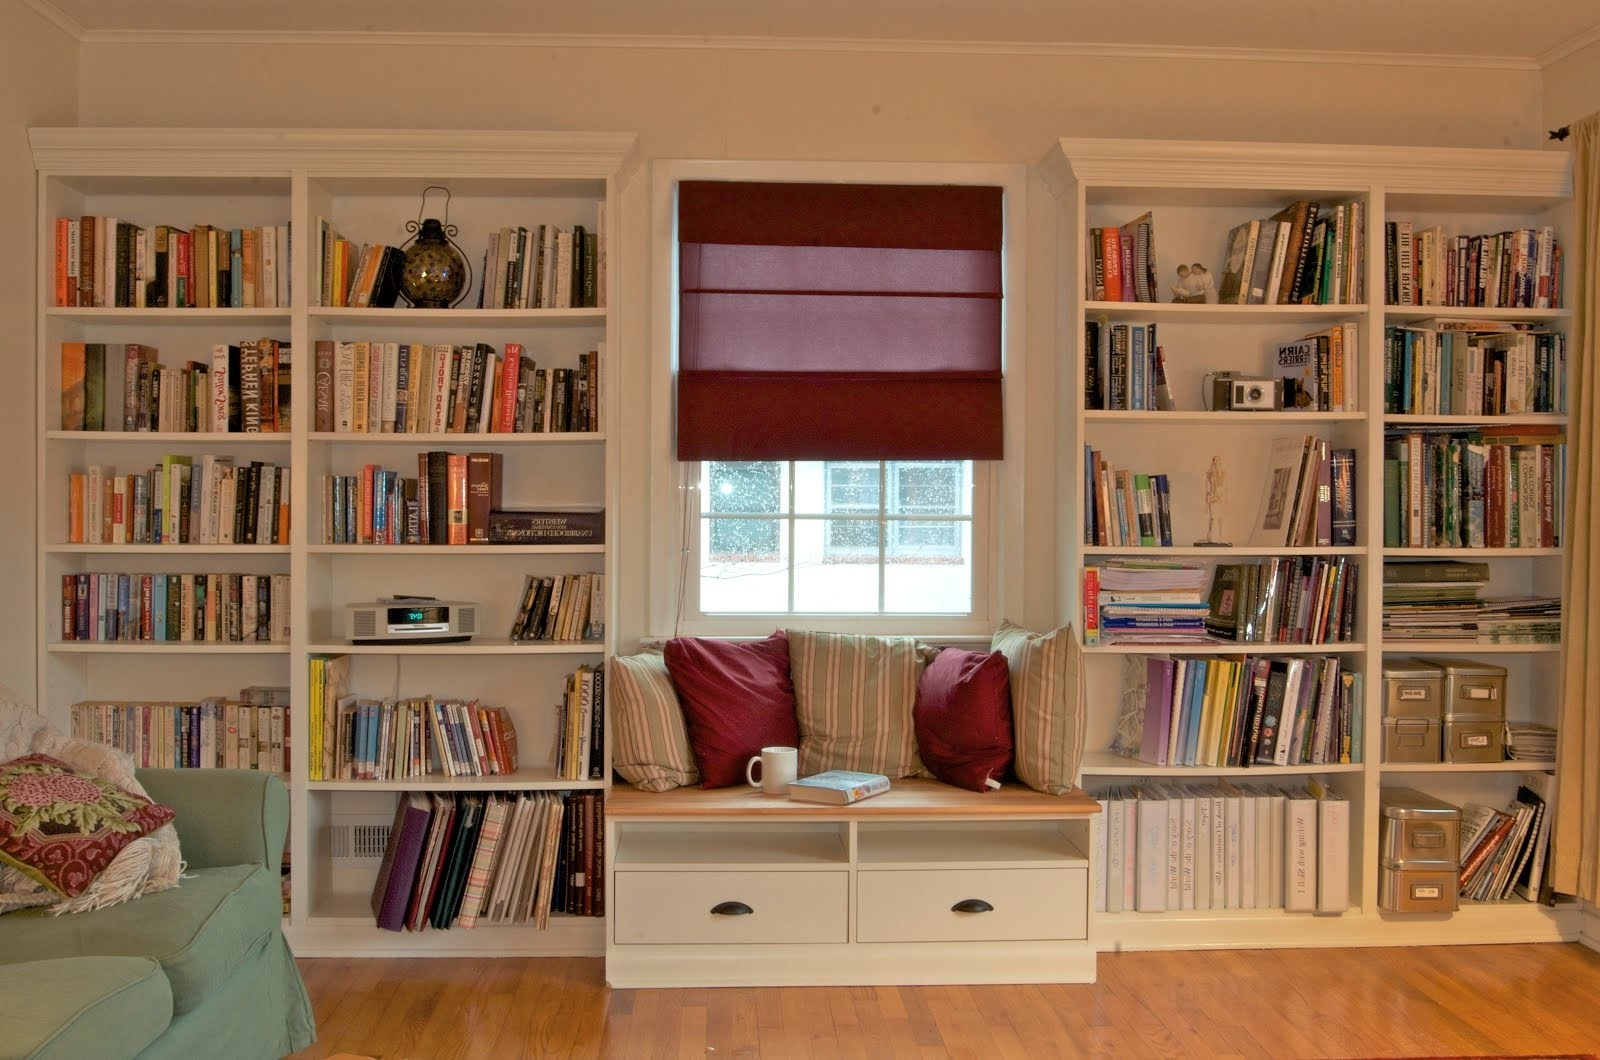 Best And Newest Bookshelves Pertaining To Built In Bookshelves With Window Seat For Under $350 – Ikea Hackers (View 3 of 15)